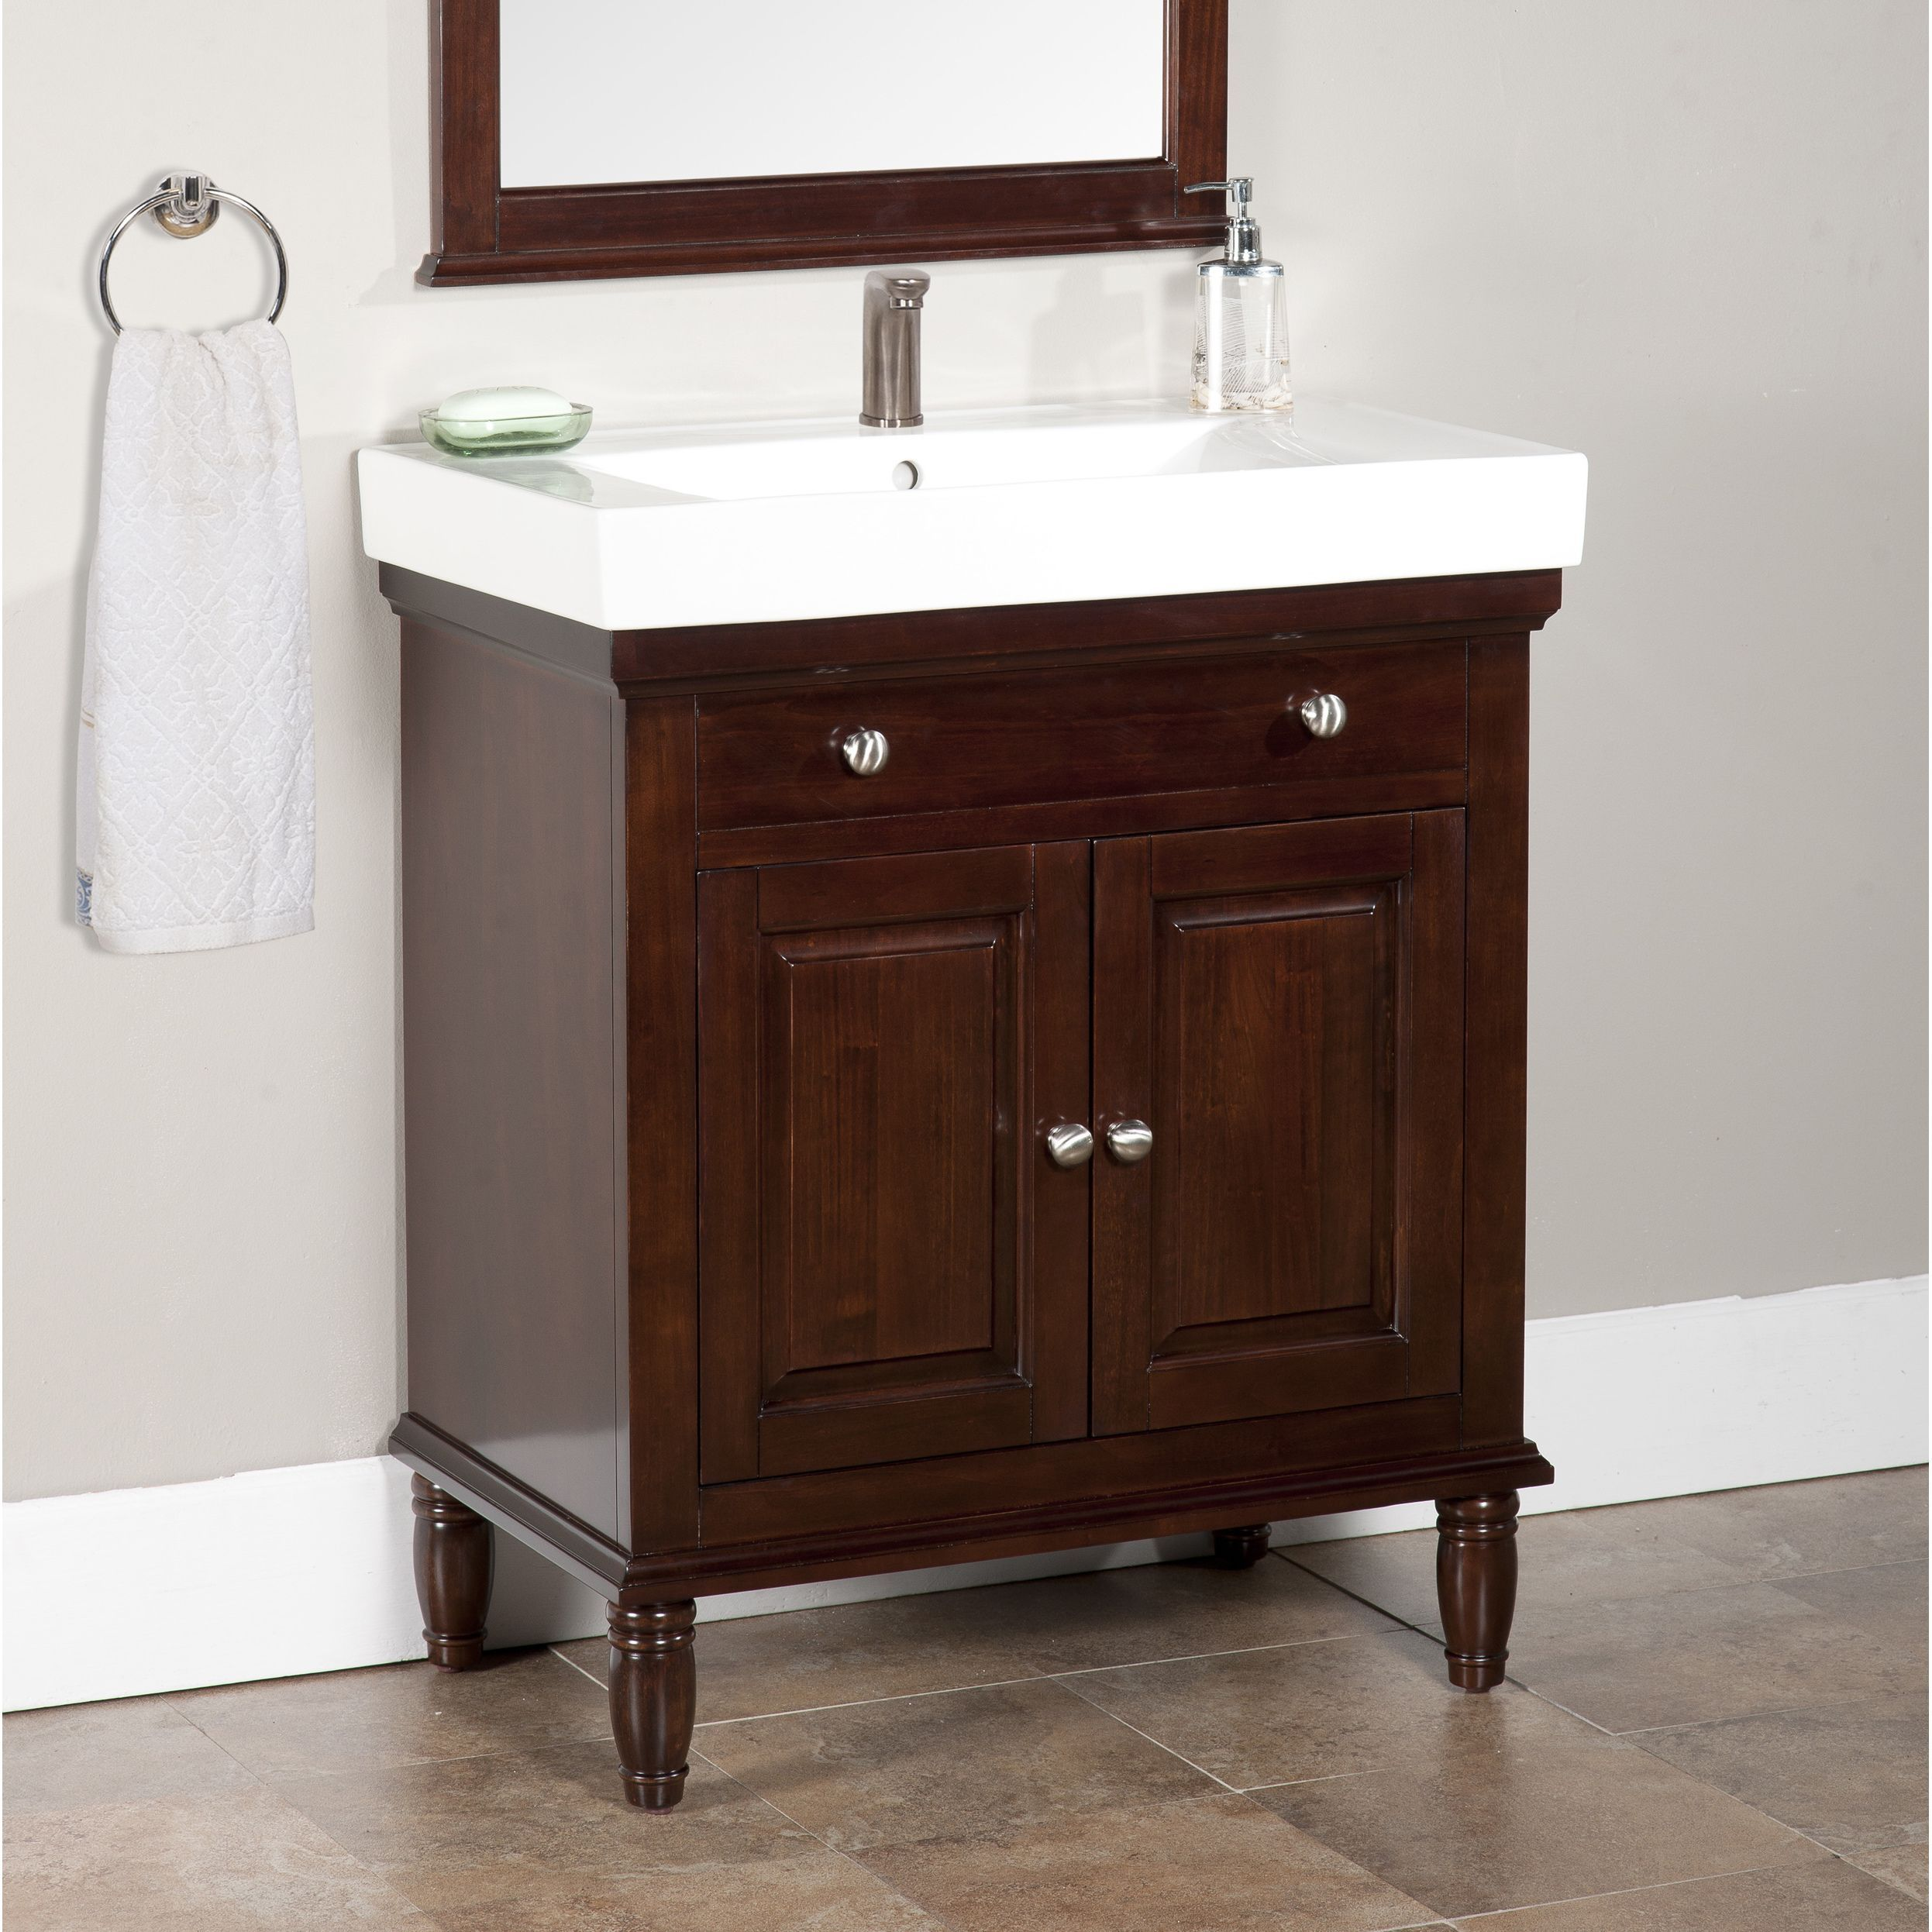 Monte Dark Brown 30 Inch Single Bathroom Vanity 30 Dark Brown Single Bathroom Vanity 30 Inch Bathroom Vanity Amazing Bathrooms